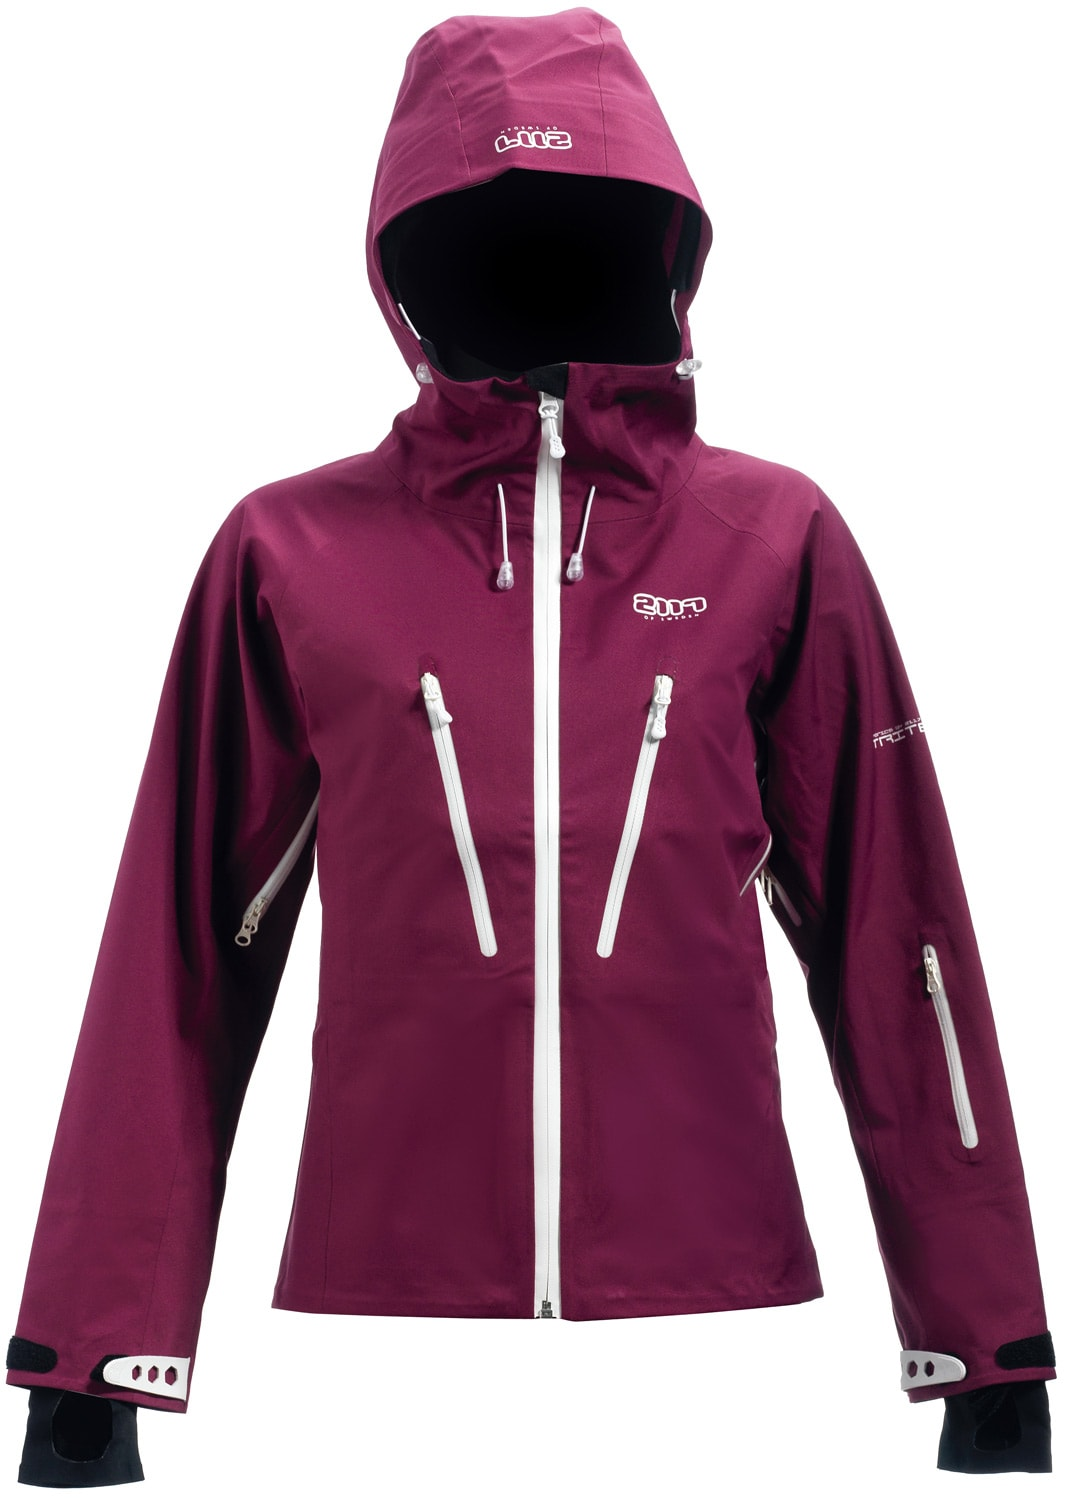 Snowboard women jackets